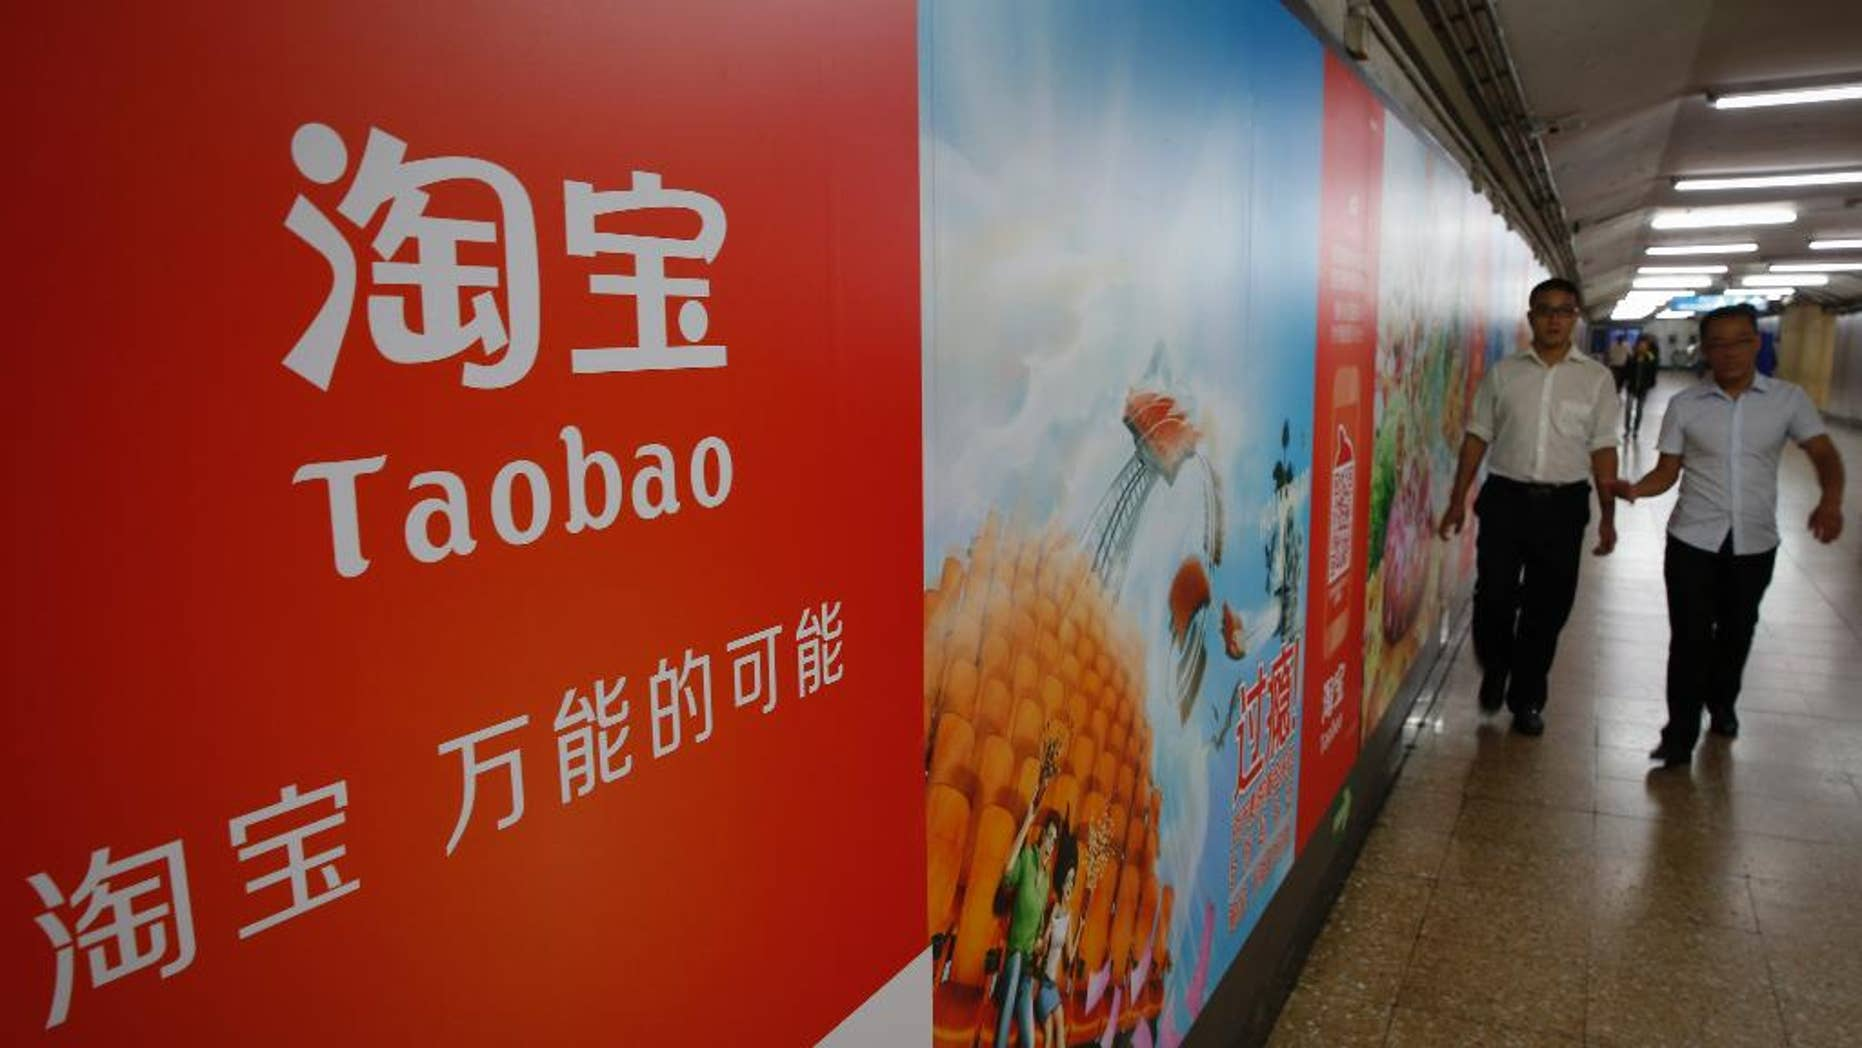 FILE - In this Sept. 18, 2014 file photo, people walk past an advertising billboard showing the mobile app of Alibaba's Taobao consumer-to-consumer site at a subway station in Beijing. Alibaba Group Holding Ltd. reports quarterly financial results before the market opens on Wednesday, Aug. 12, 2015. (AP Photo/Vincent Thian, File)